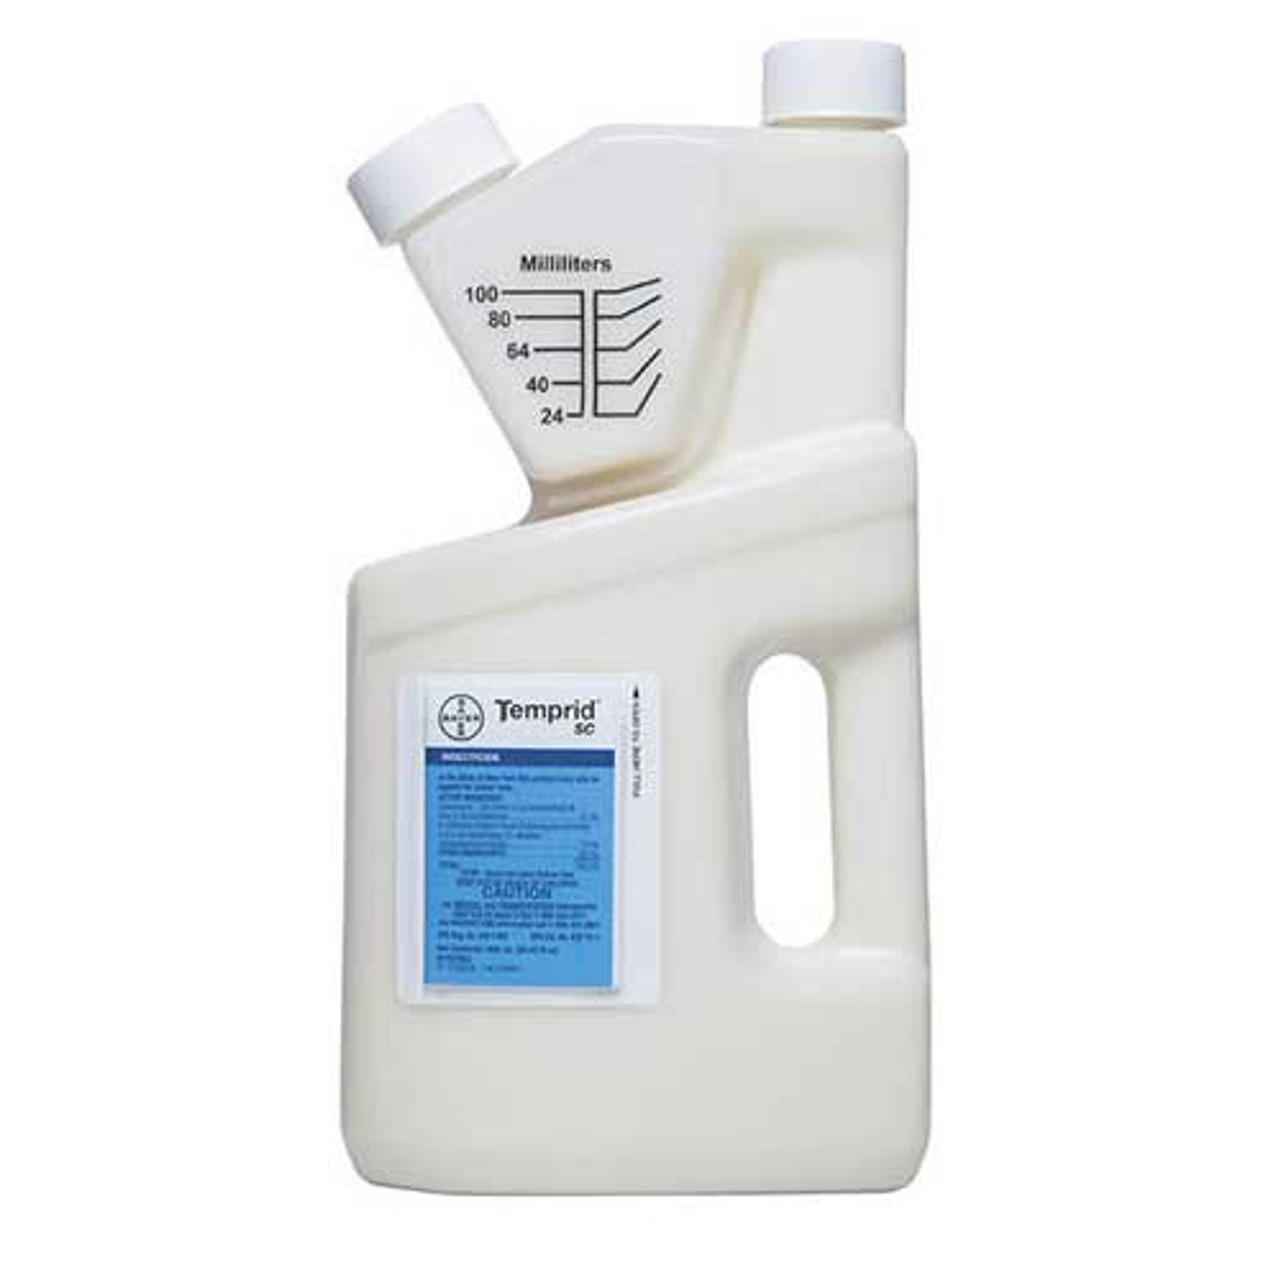 Temprid FX Insecticide 900 ml